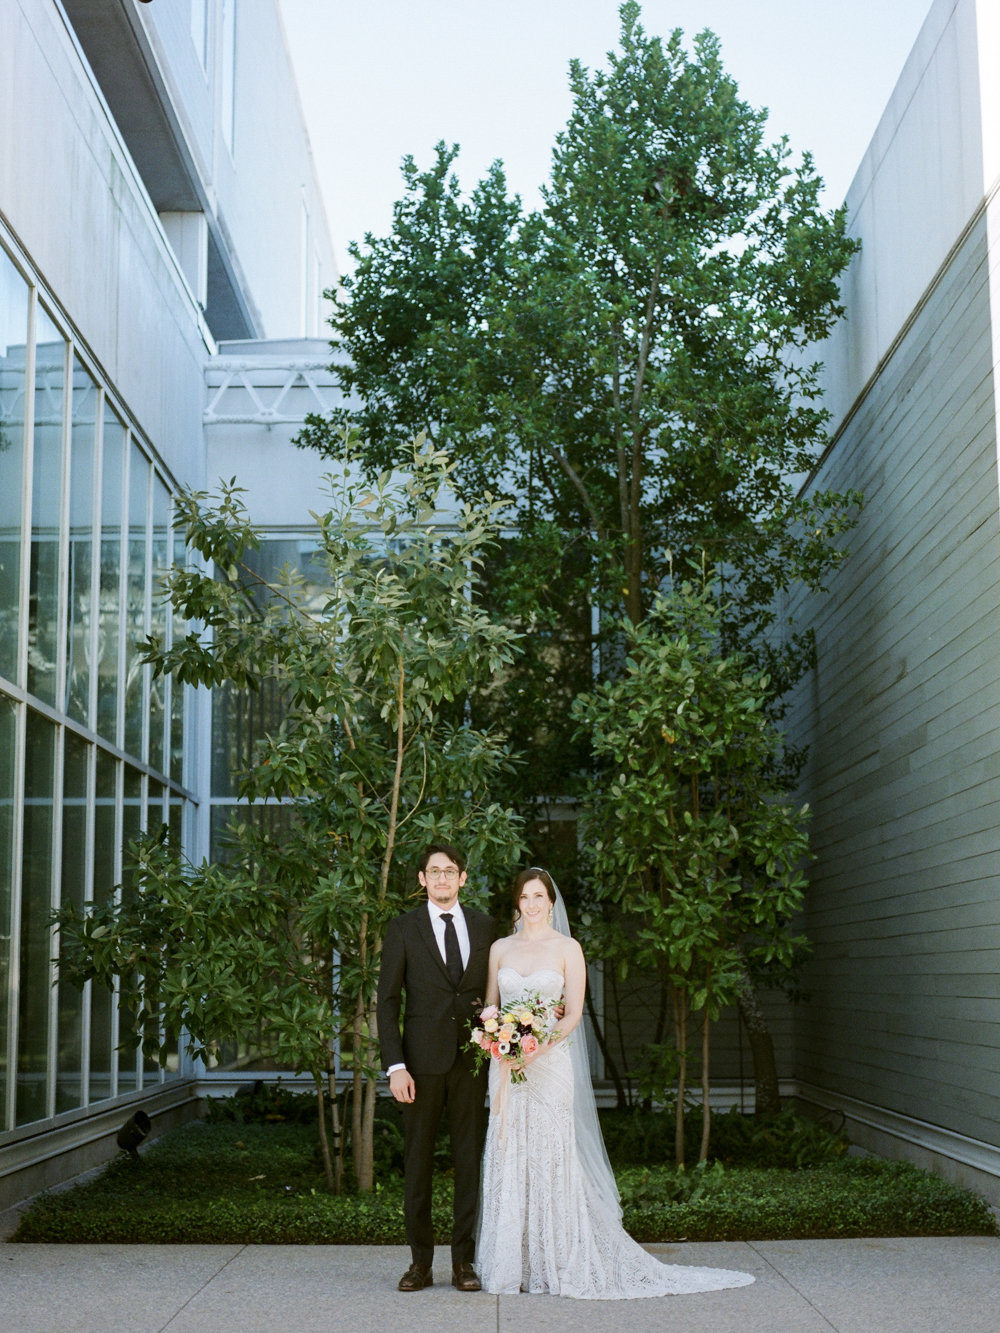 fall wedding at rothko chapel- houston wedding photographer-christine gosch - film photographer - elopement photographer- intimate wedding - lovely bride wedding gown-7.jpg